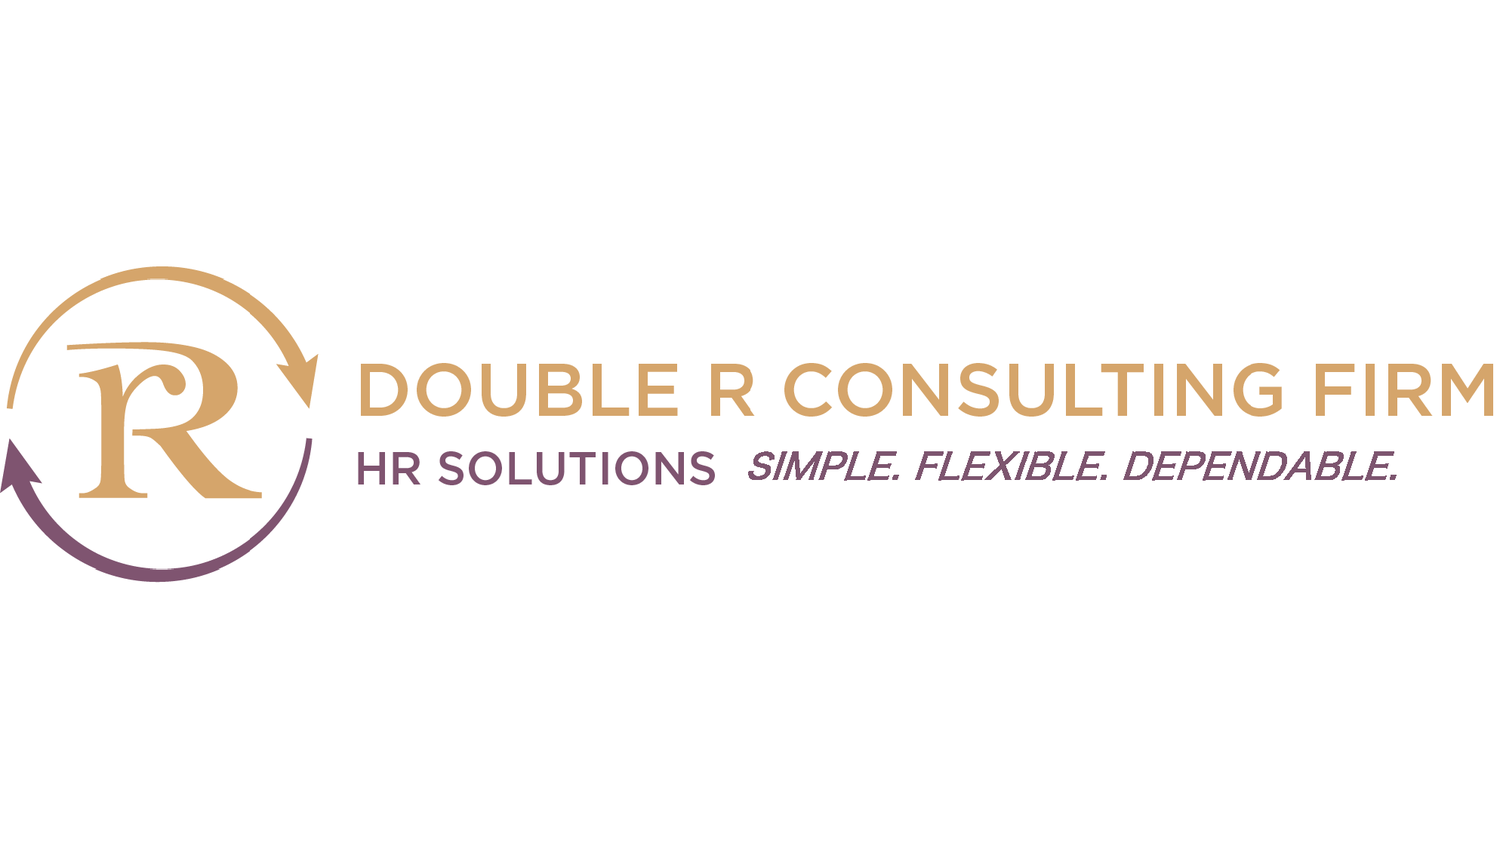 Double R Consulting Firm - Double R Consulting Firm